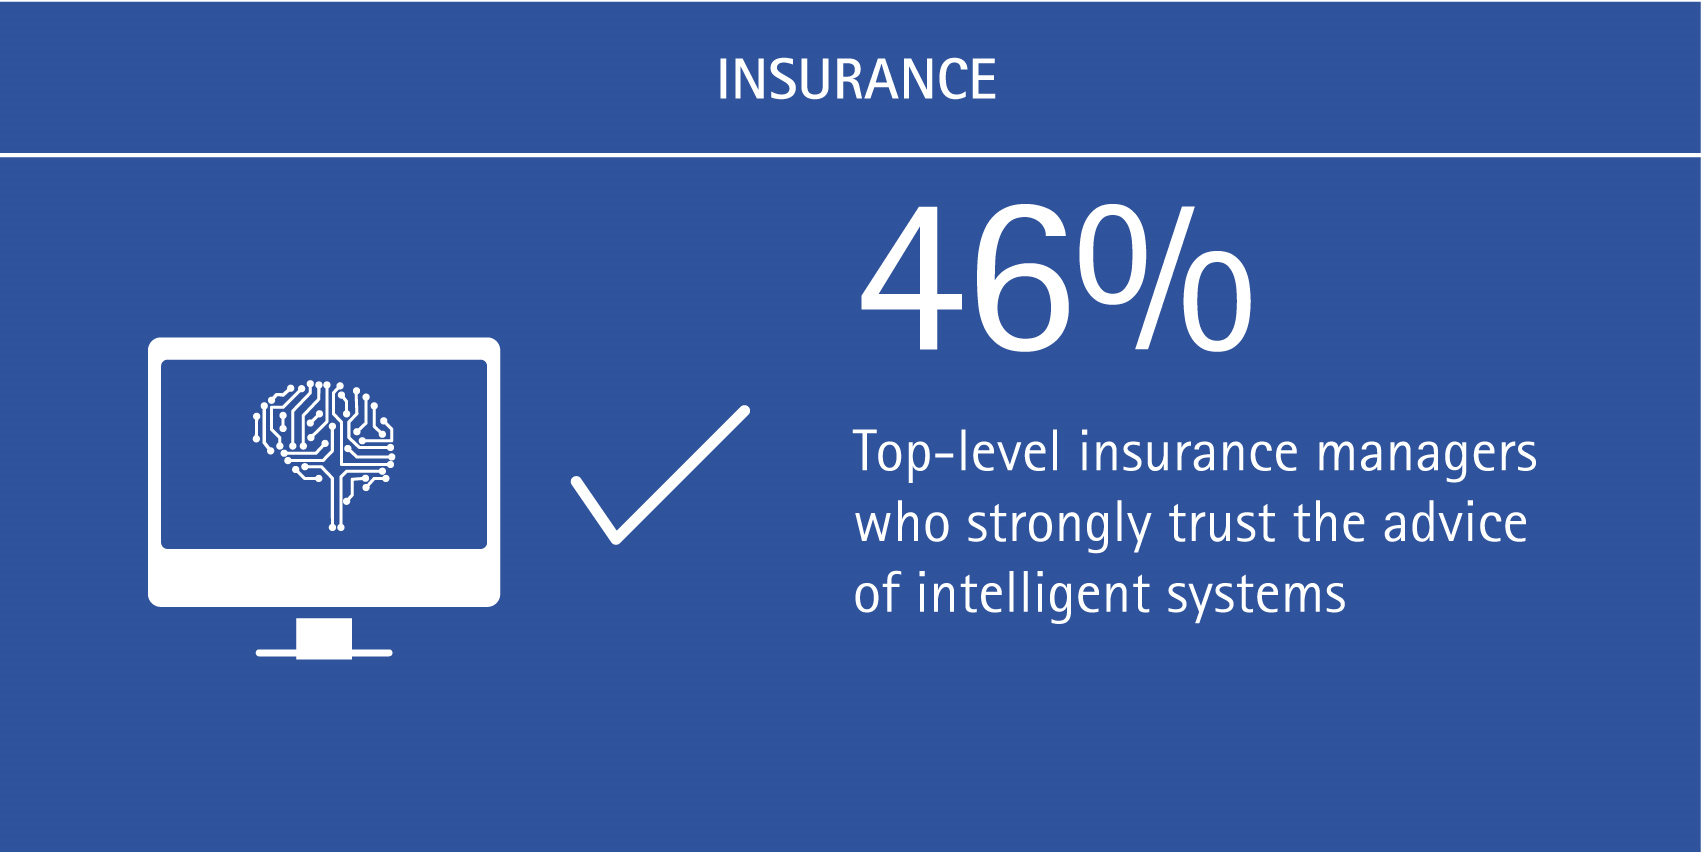 46% of top-level insurance managers strongly trust the advice of intelligent systems